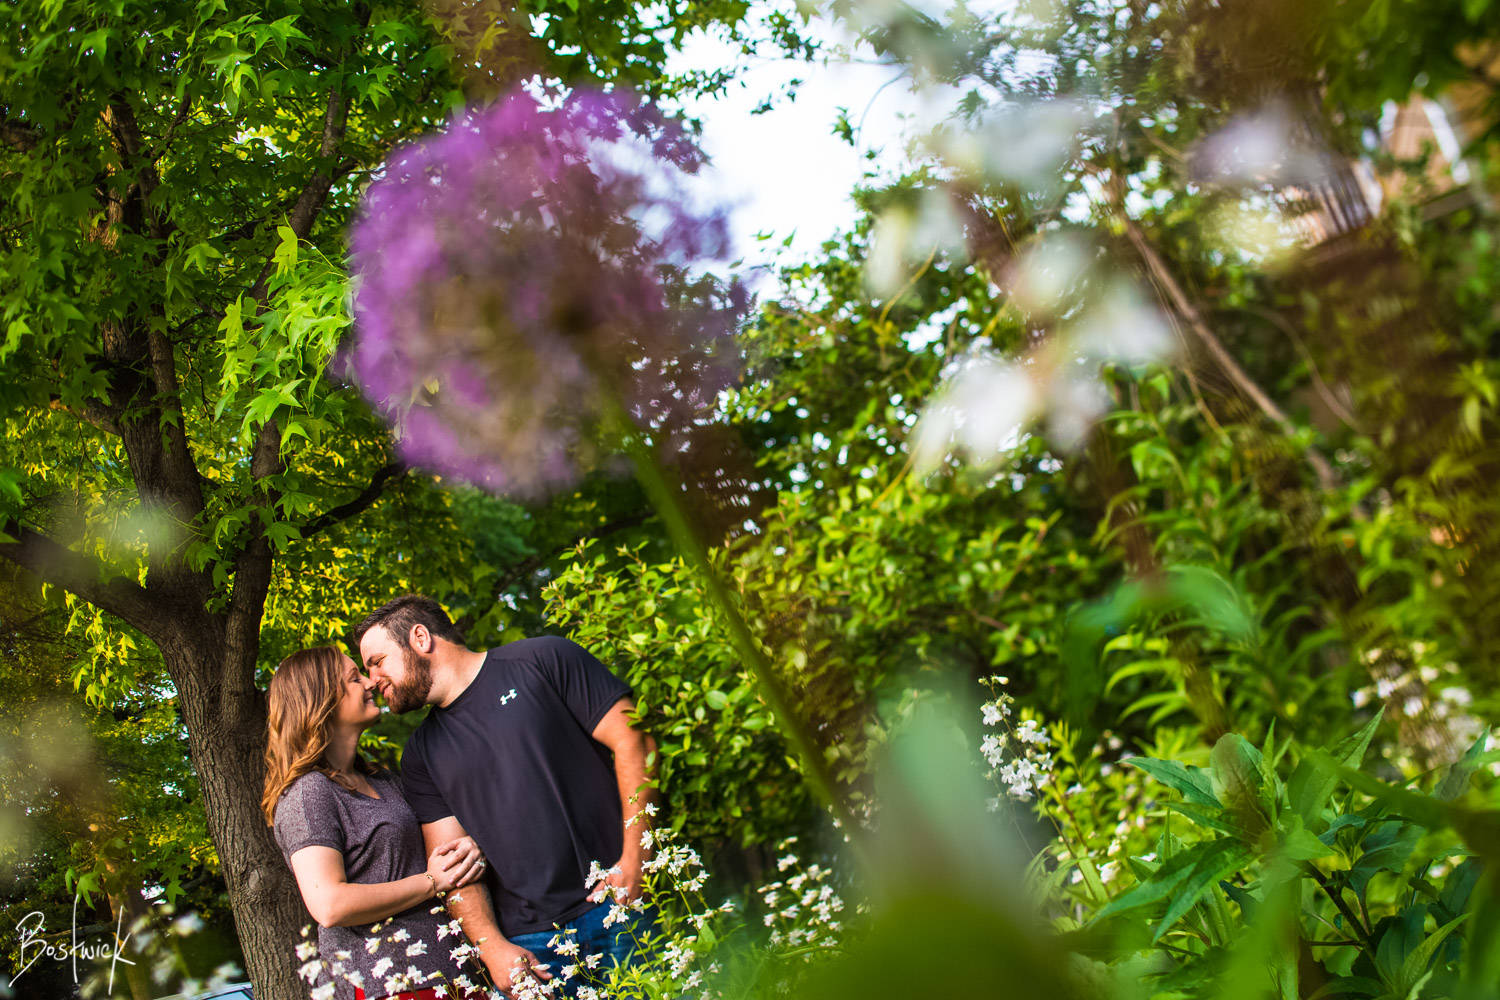 St-micheals-md-engagement-photos (12 of 19)